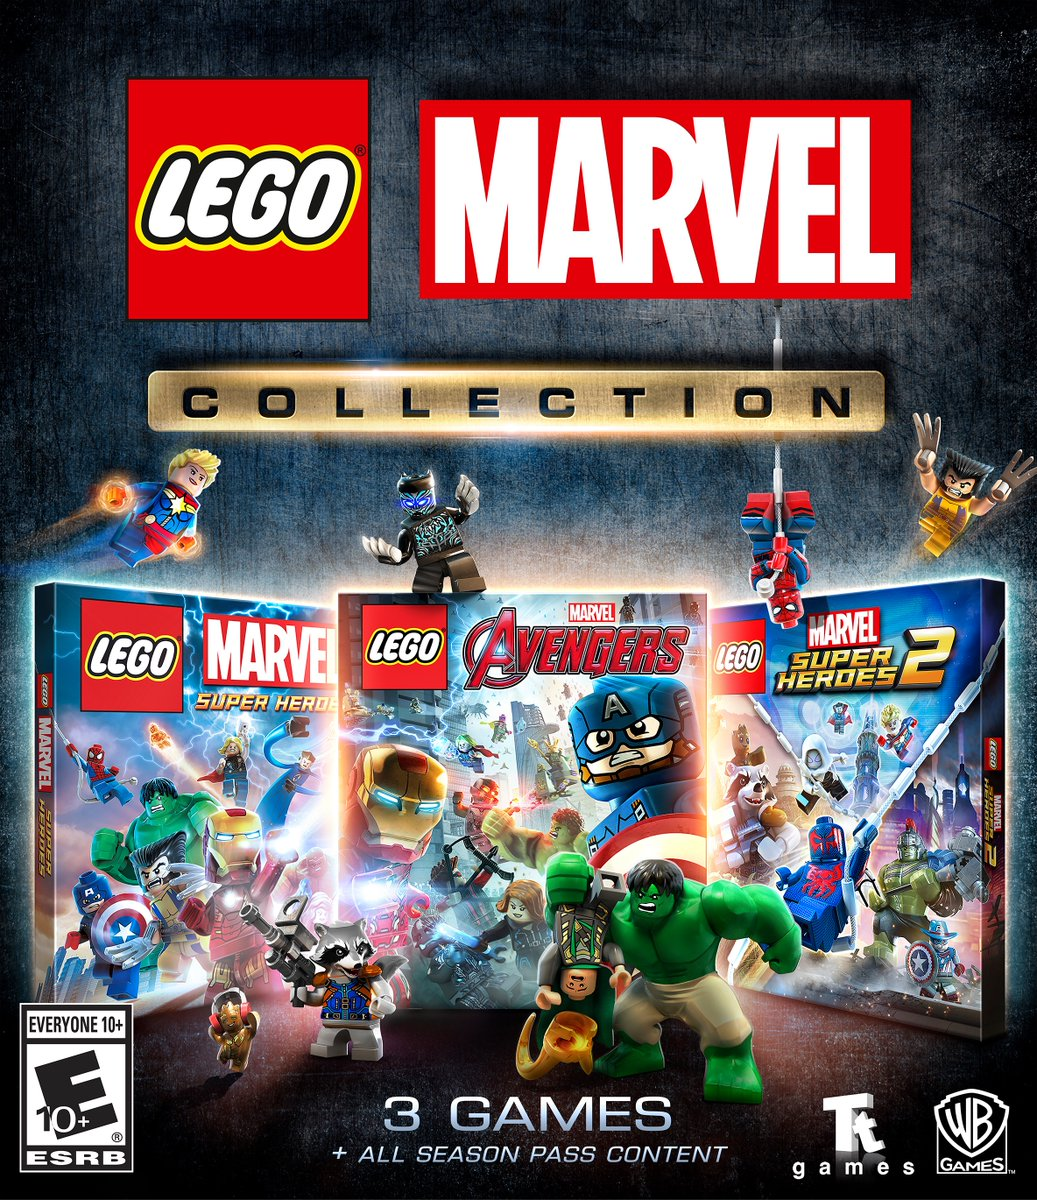 LEGO Marvel Collection Releasing on March 12 - The Brick Fan